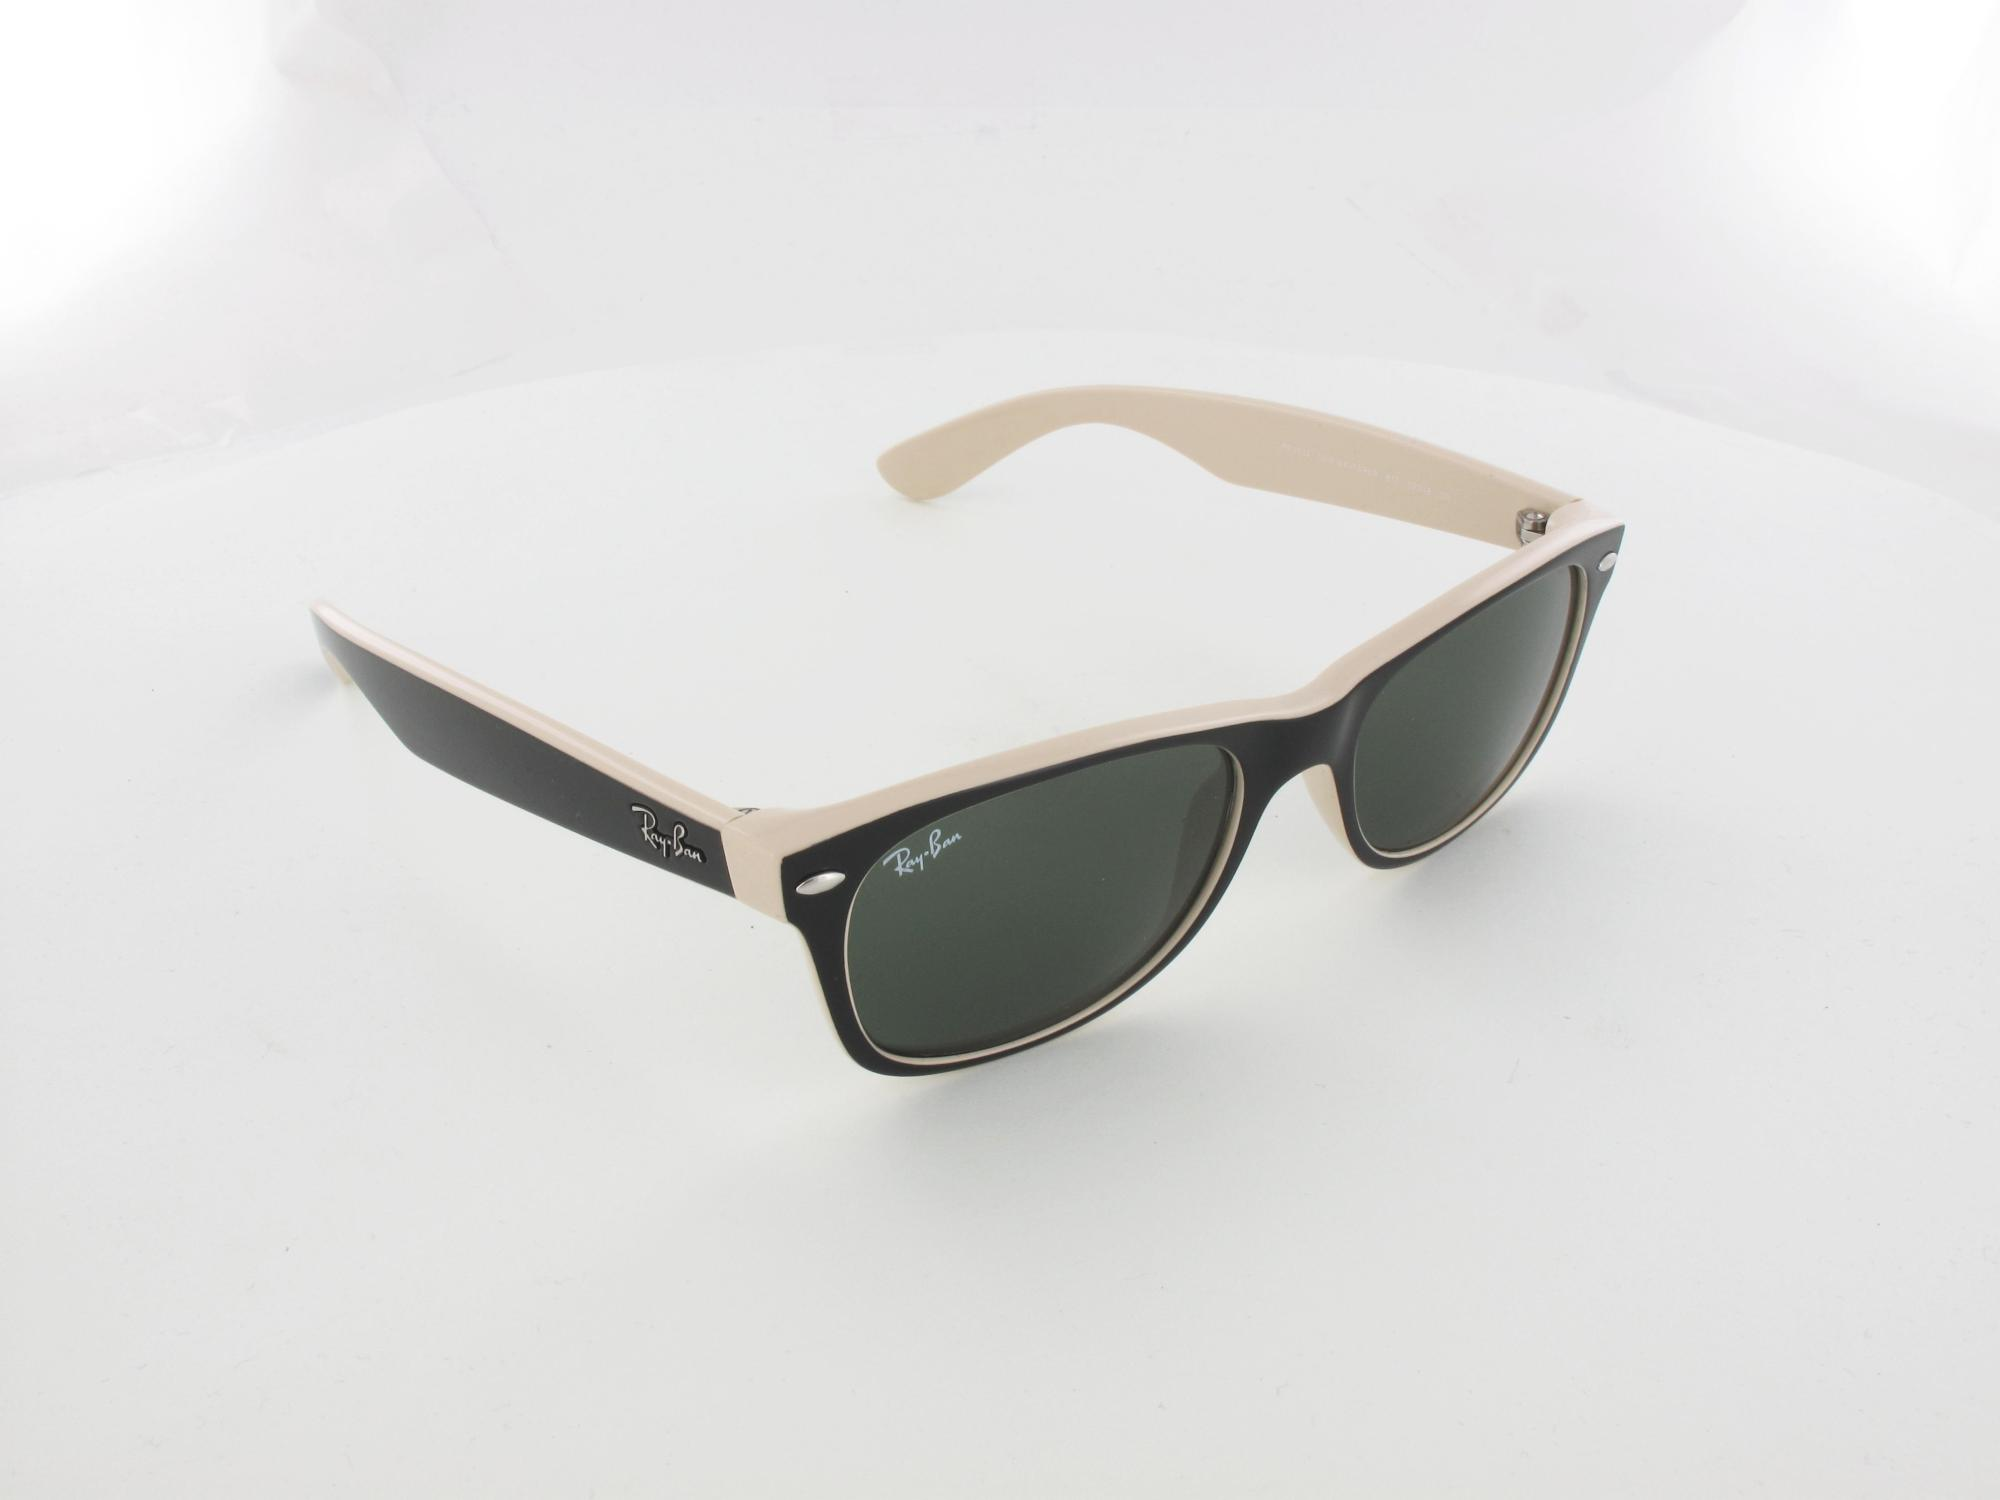 Ray Ban | New Wayfarer RB2132  875 52 | top black on beige / crystal green